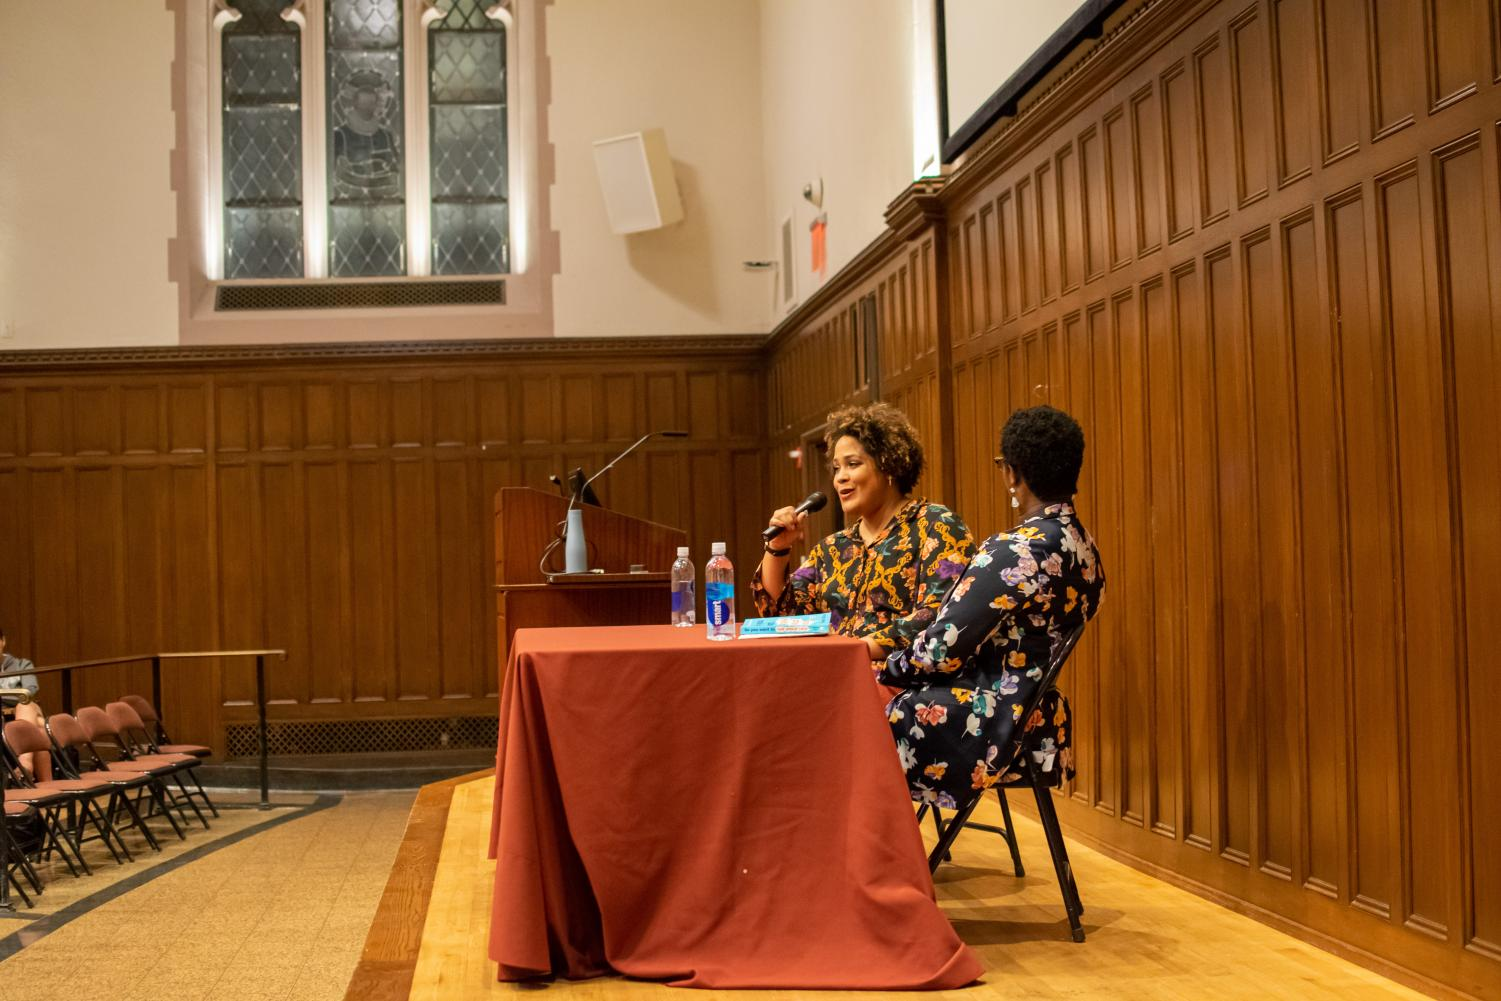 The event was held by 'The Bronx Is Reading,' the sponsors of The Bronx Book Festival, held at Fordham Rose Hill.